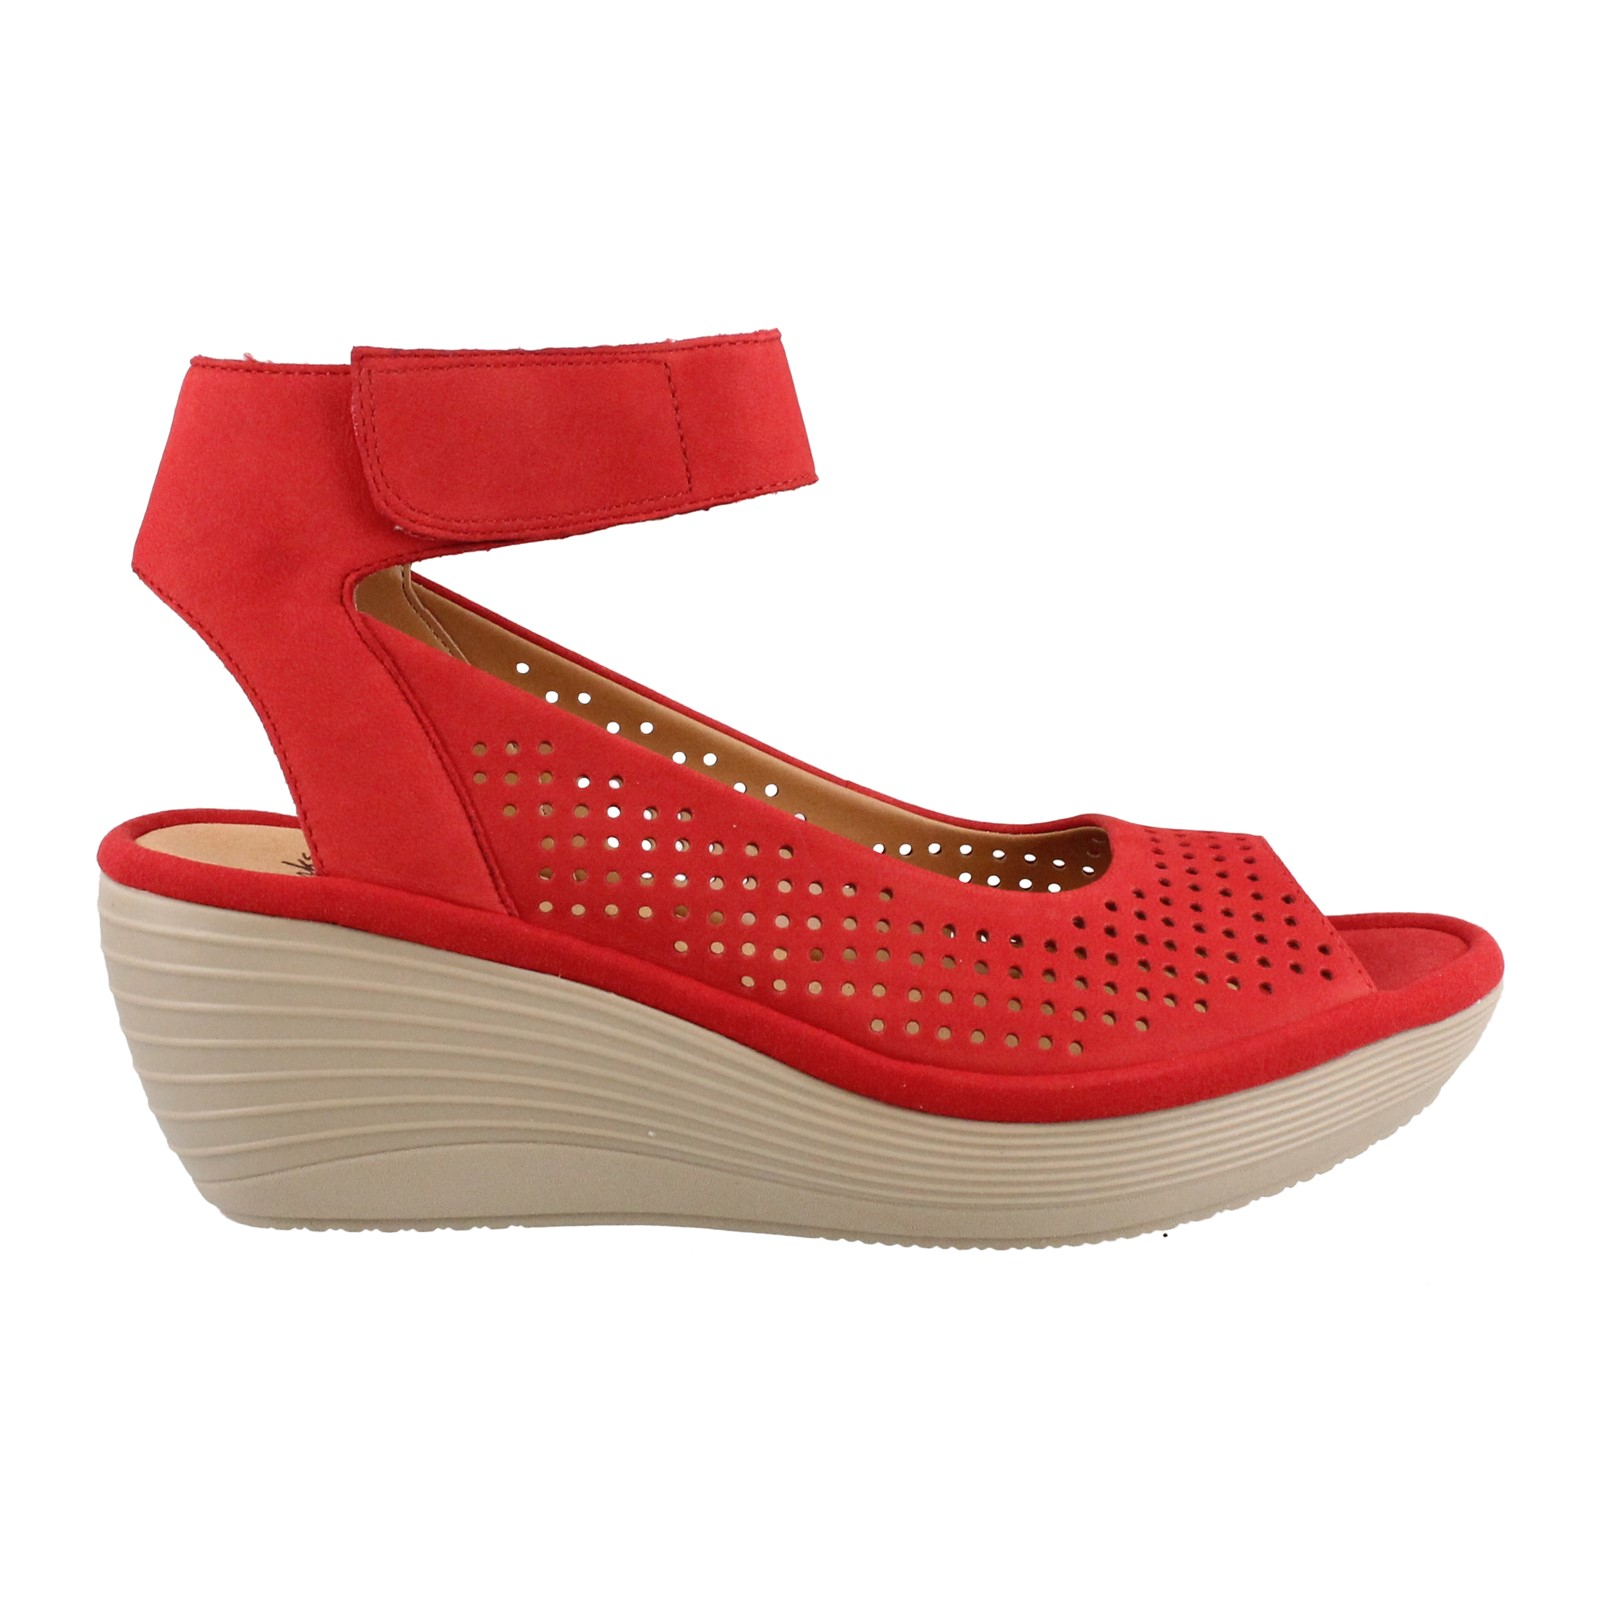 e2e0e8ef6e Home; Women's Clarks, Reedly Salene Mid Wedge Sandals. Previous. default  view ...